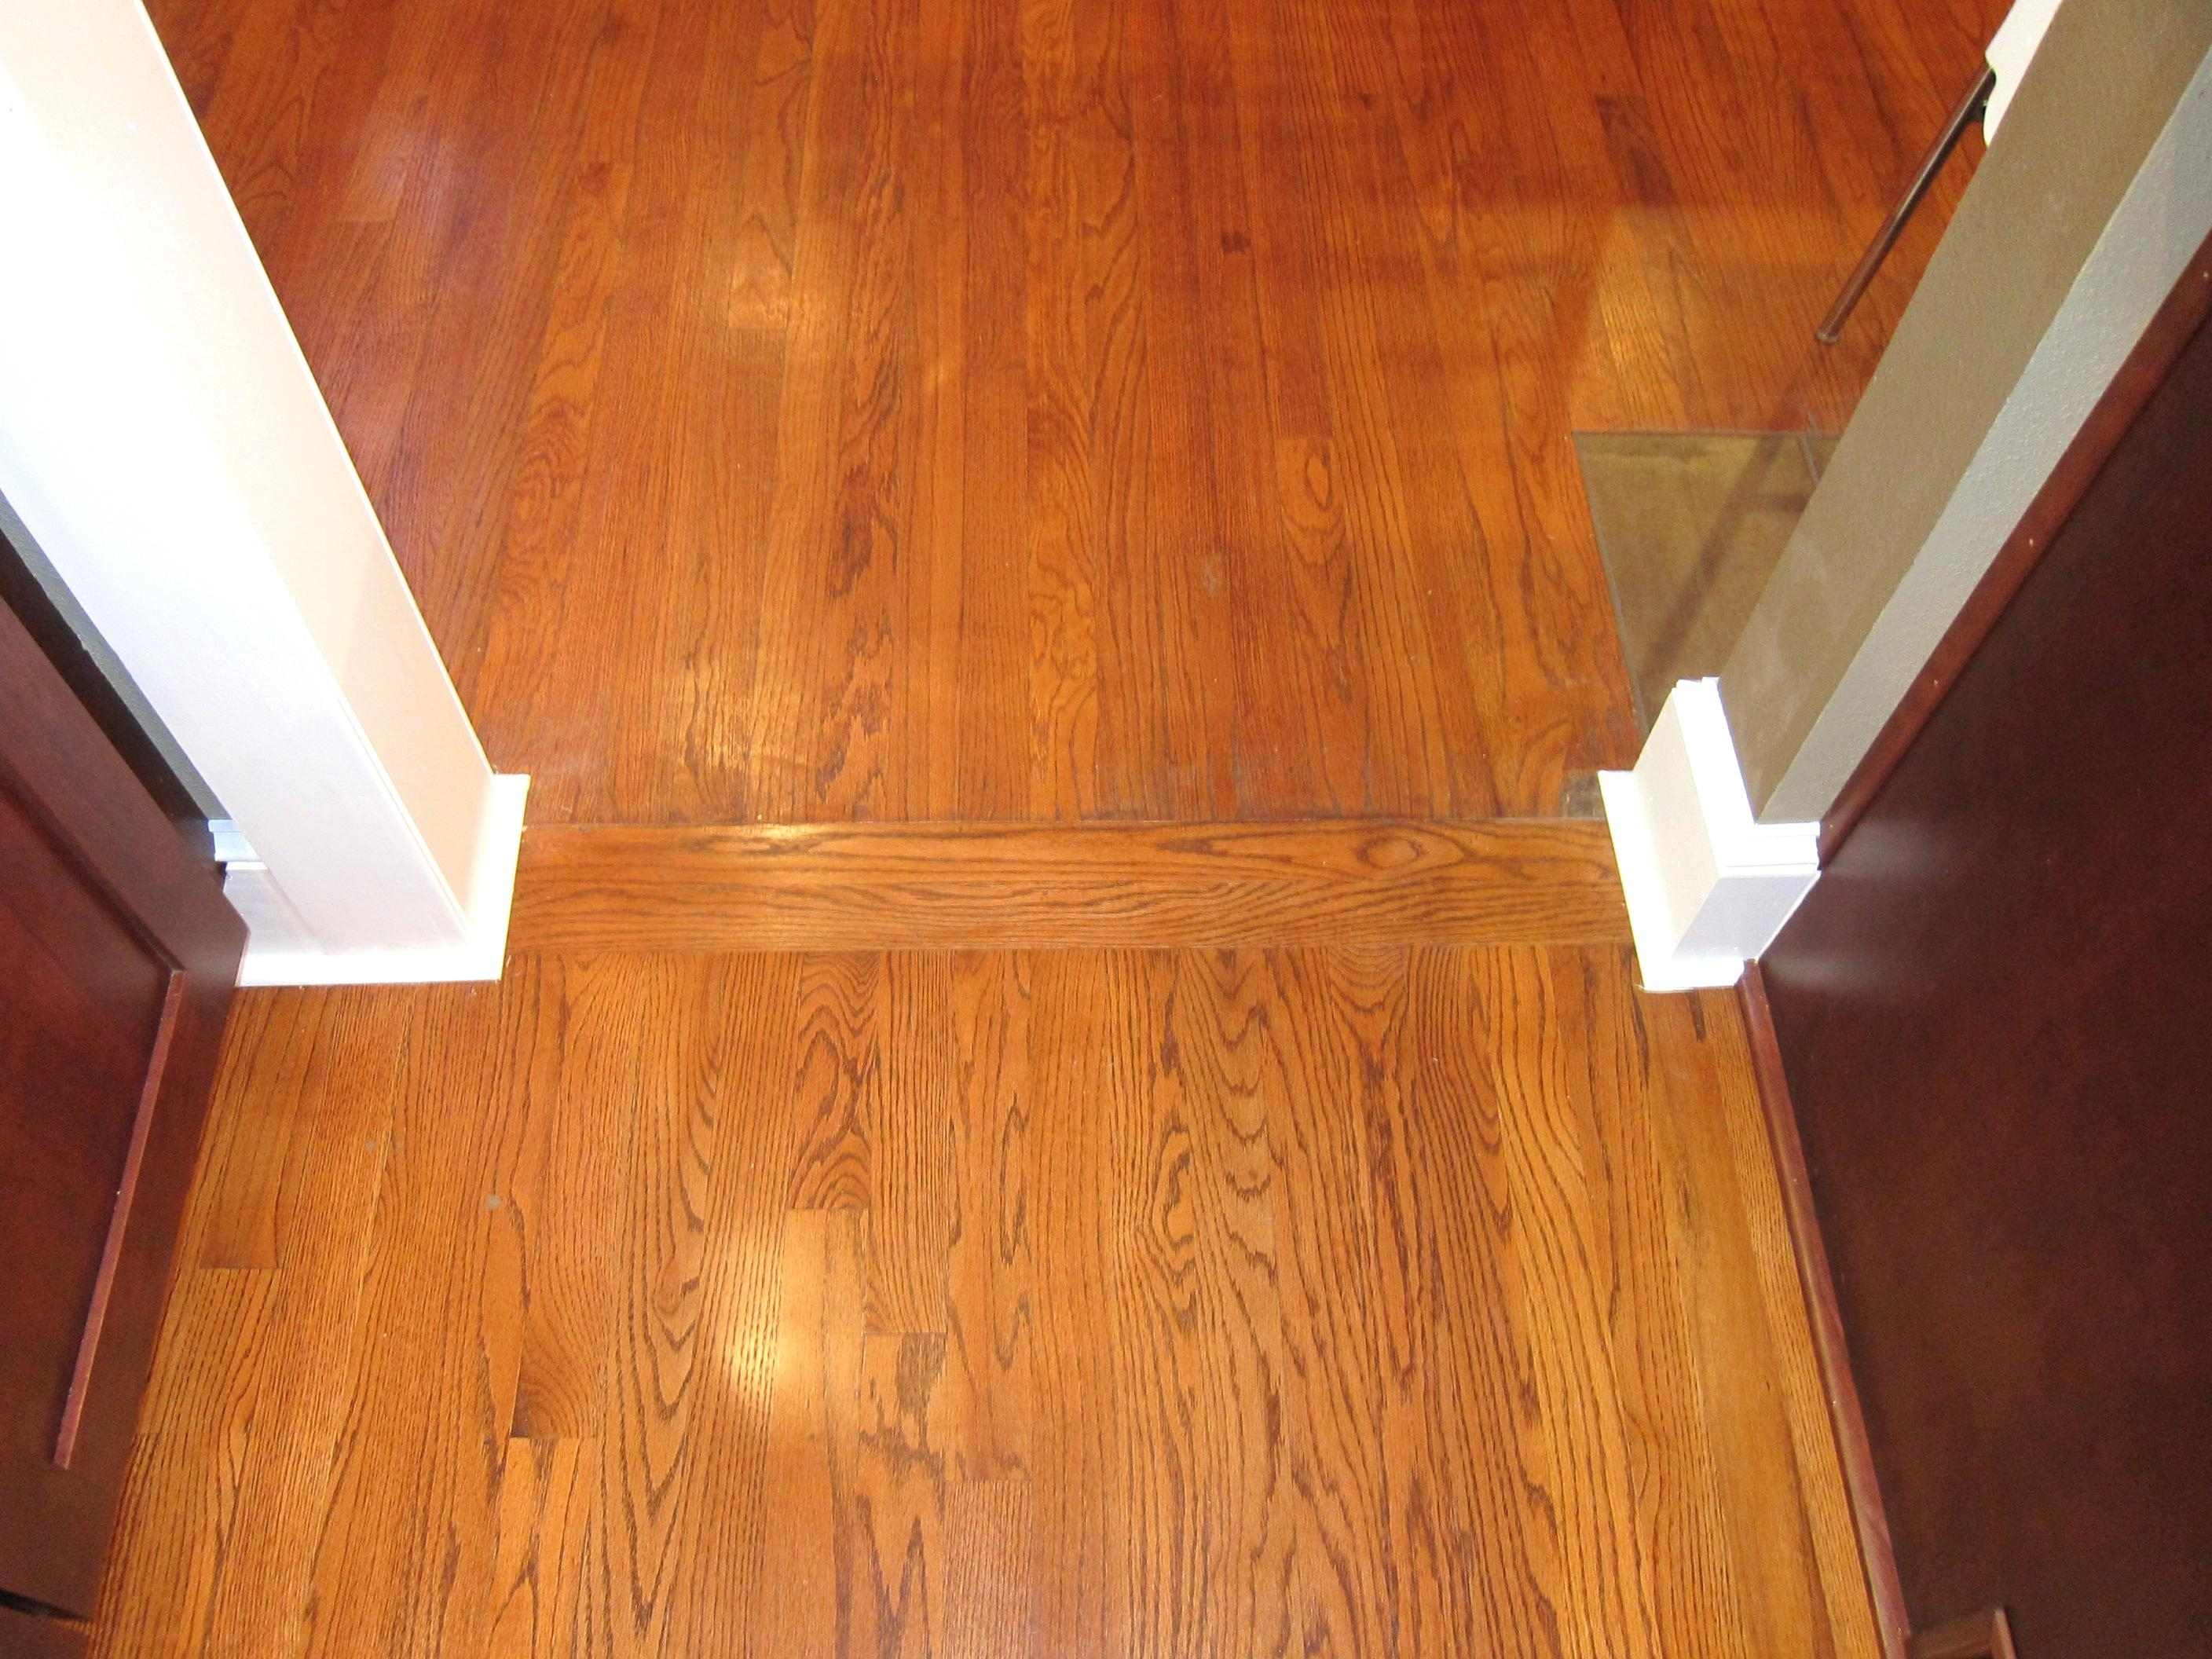 Floating Wood Floor Transition Stripstransition Wood Floor Between